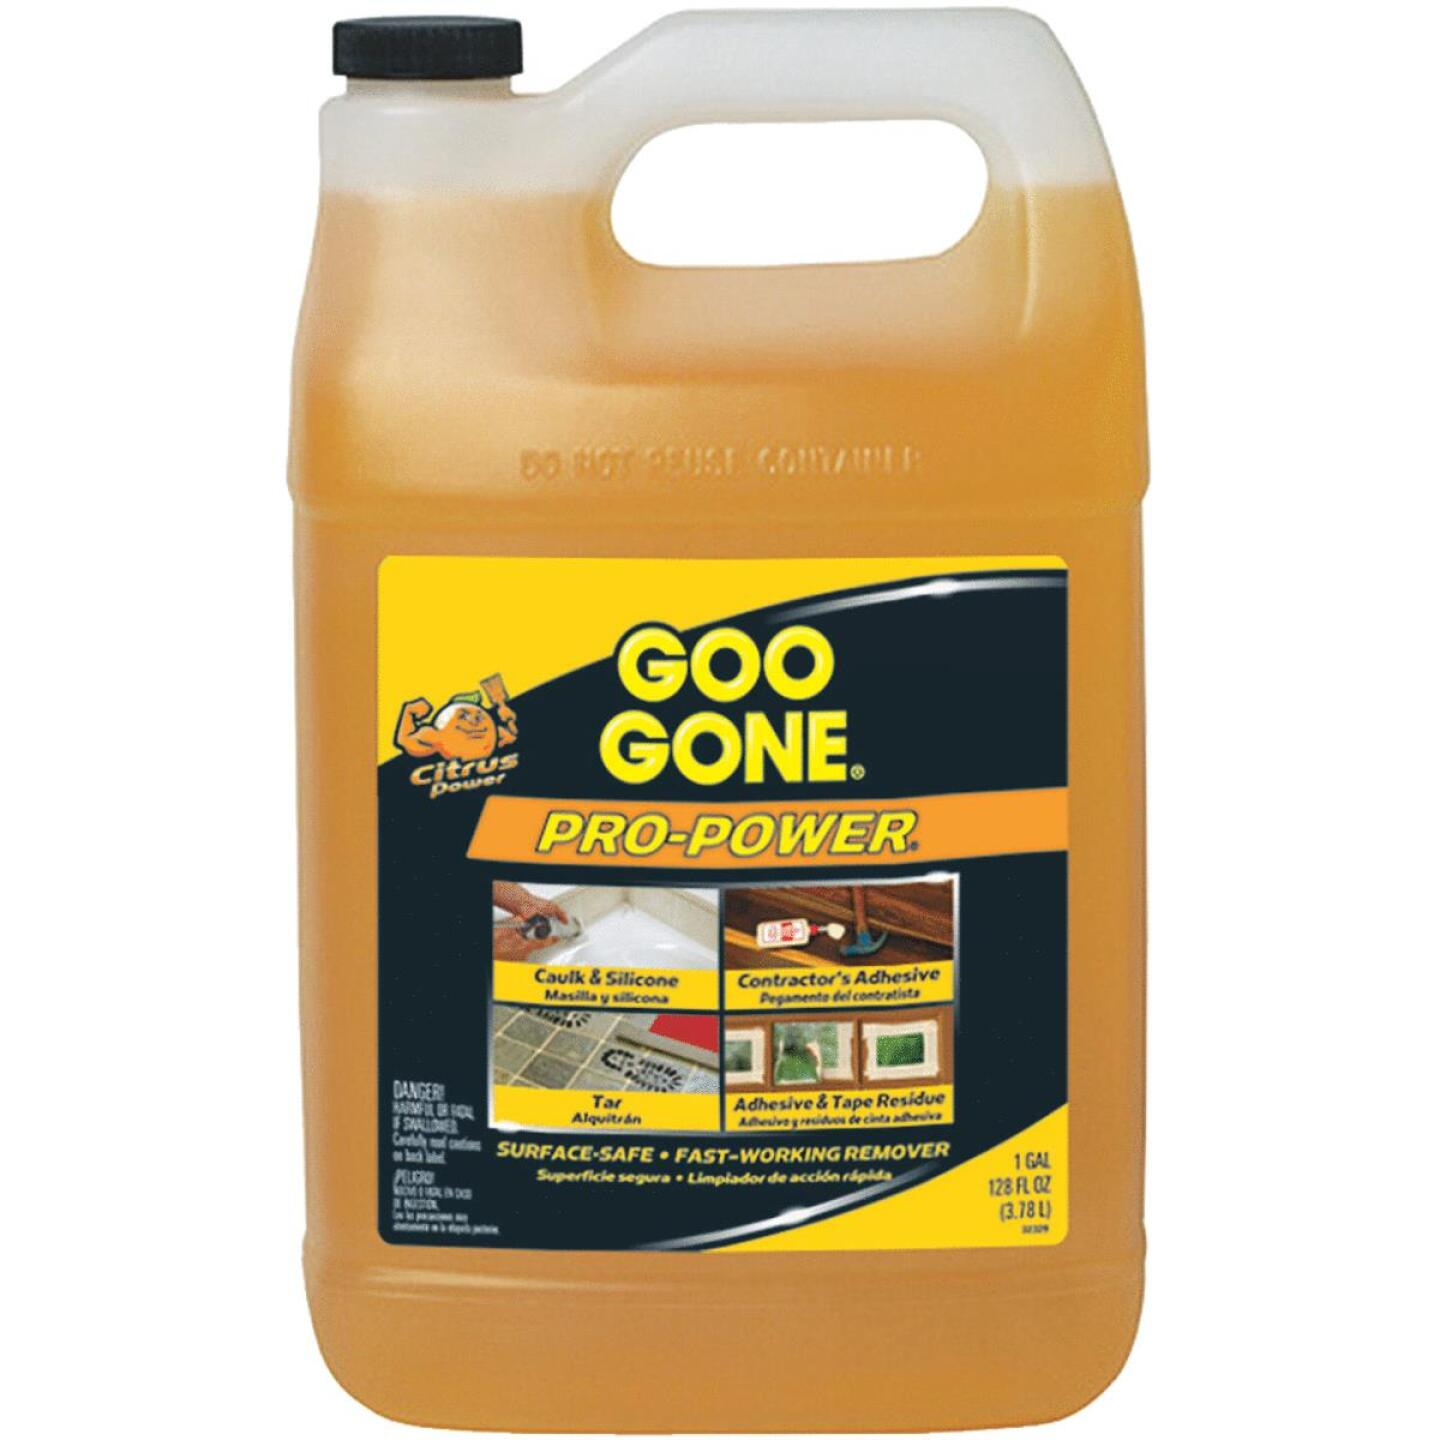 Goo Gone 1 Gal. Pro-Power Adhesive Remover Image 206